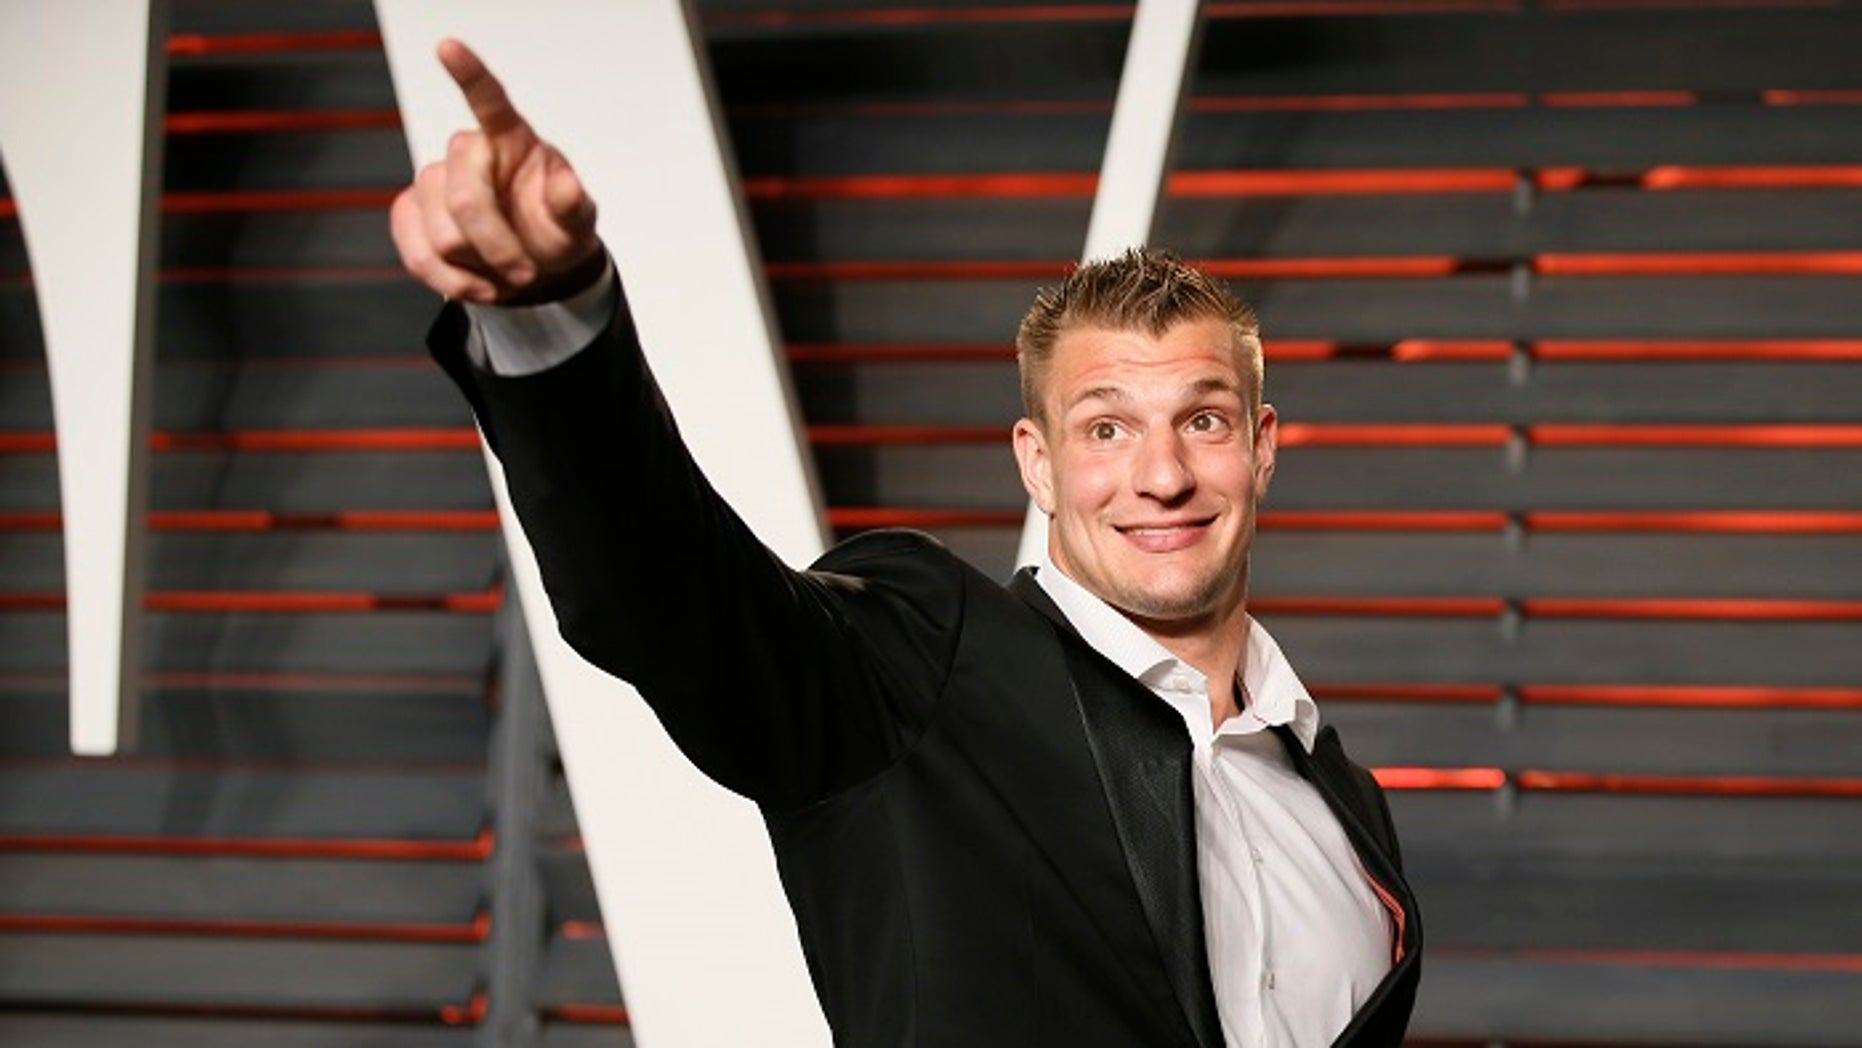 Rob Gronkowski is reportedly considering retiring from the NFL to pursue an acting career.